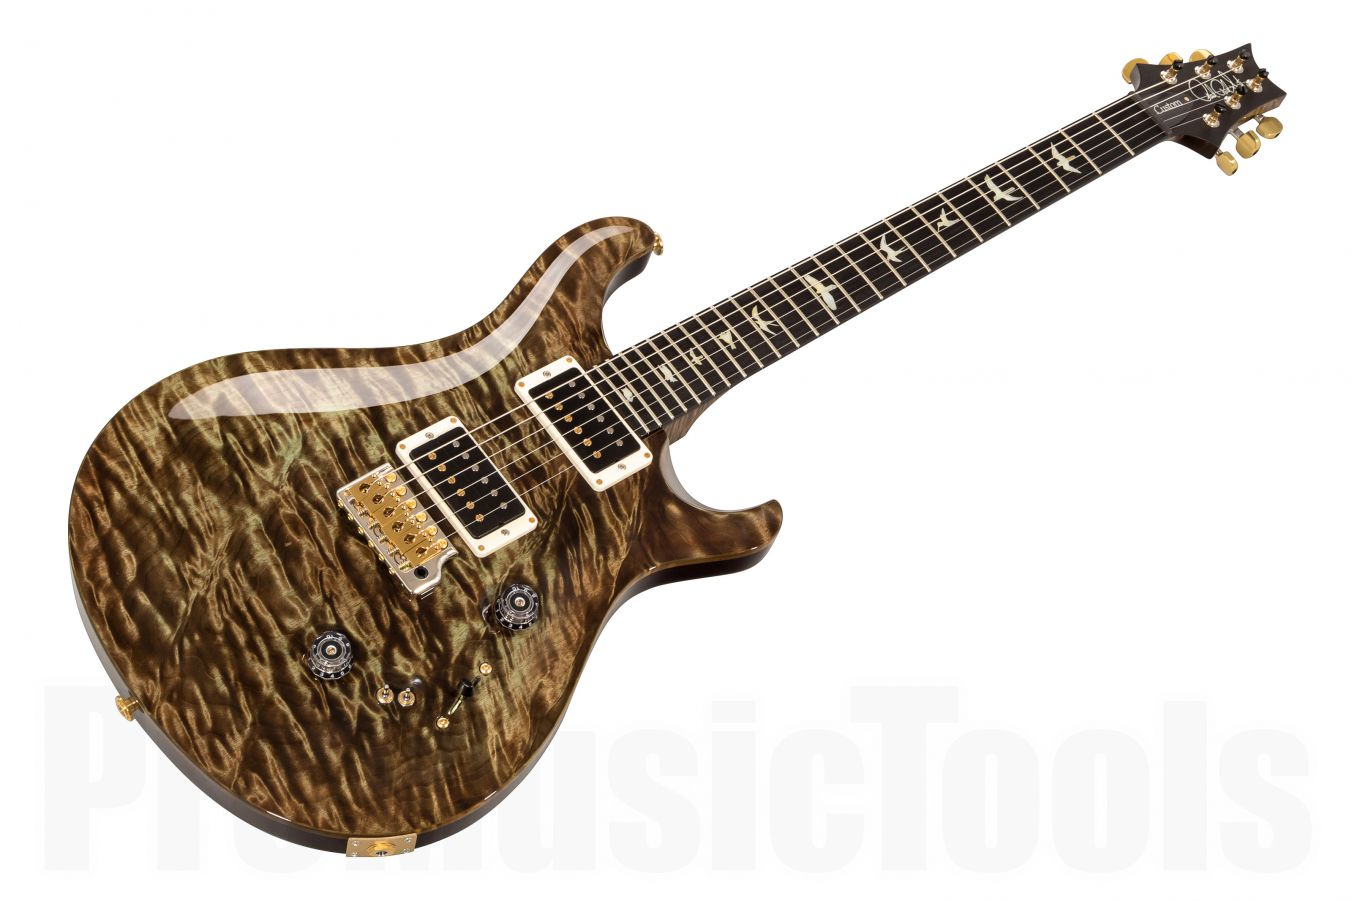 PRS USA Custom 24-08 Experience Wood Library T9 (MG) - Mash Green - 1-pc Quilt top